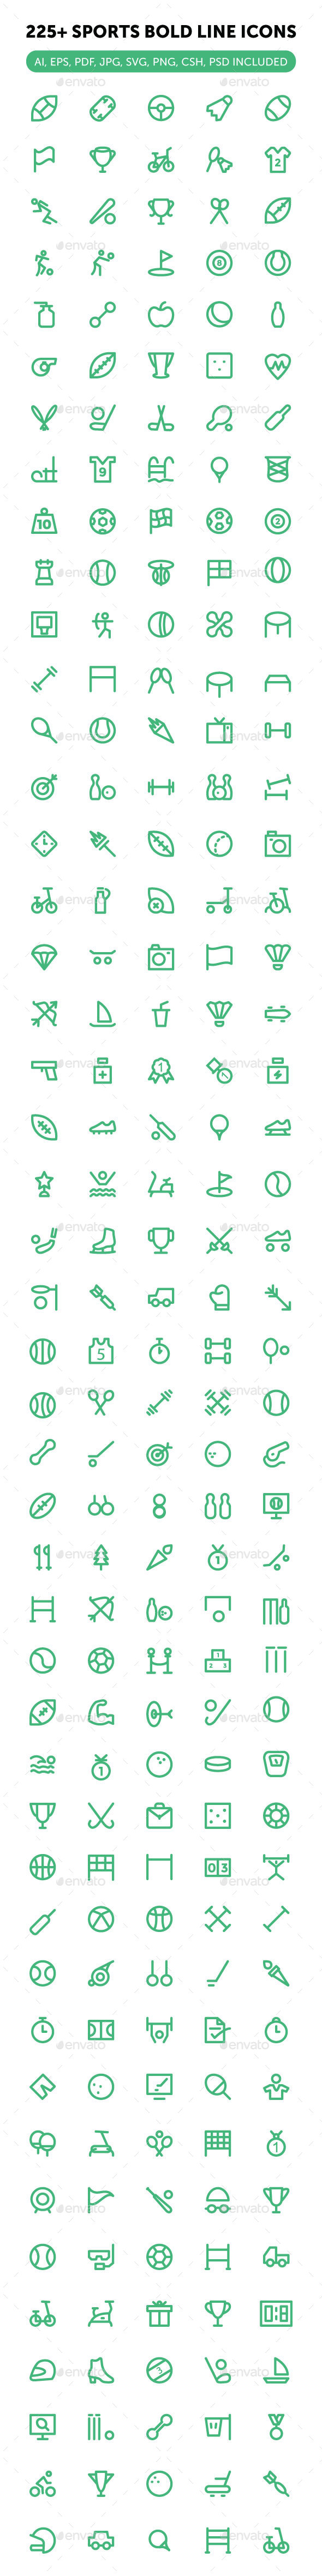 225+ Sports Icons Set - Objects Icons